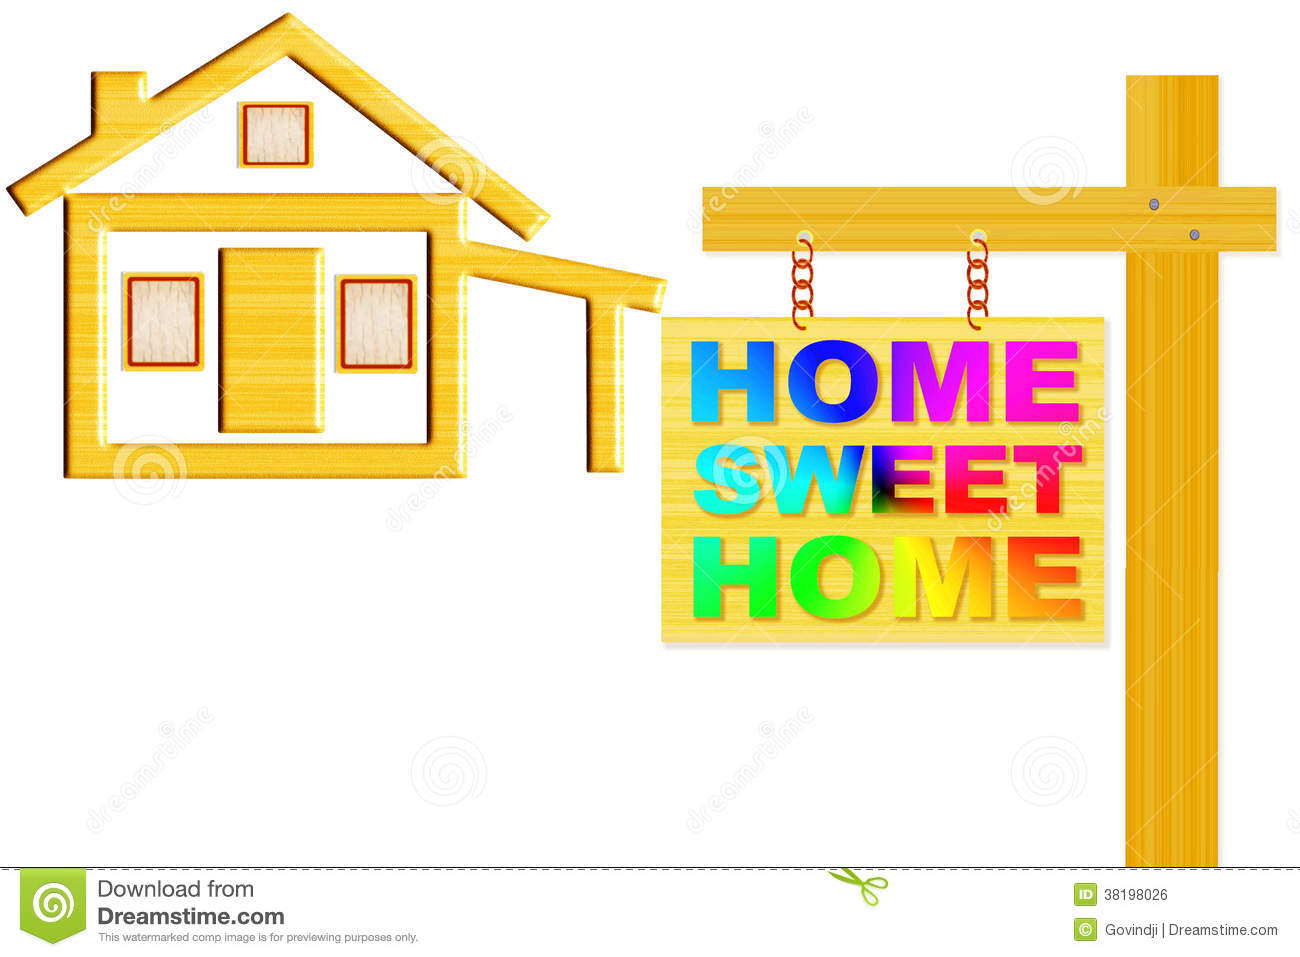 Home Sweet Home Sign Board With Post And Home Icon Design Royalty Free Stock Image - Image: 38198026